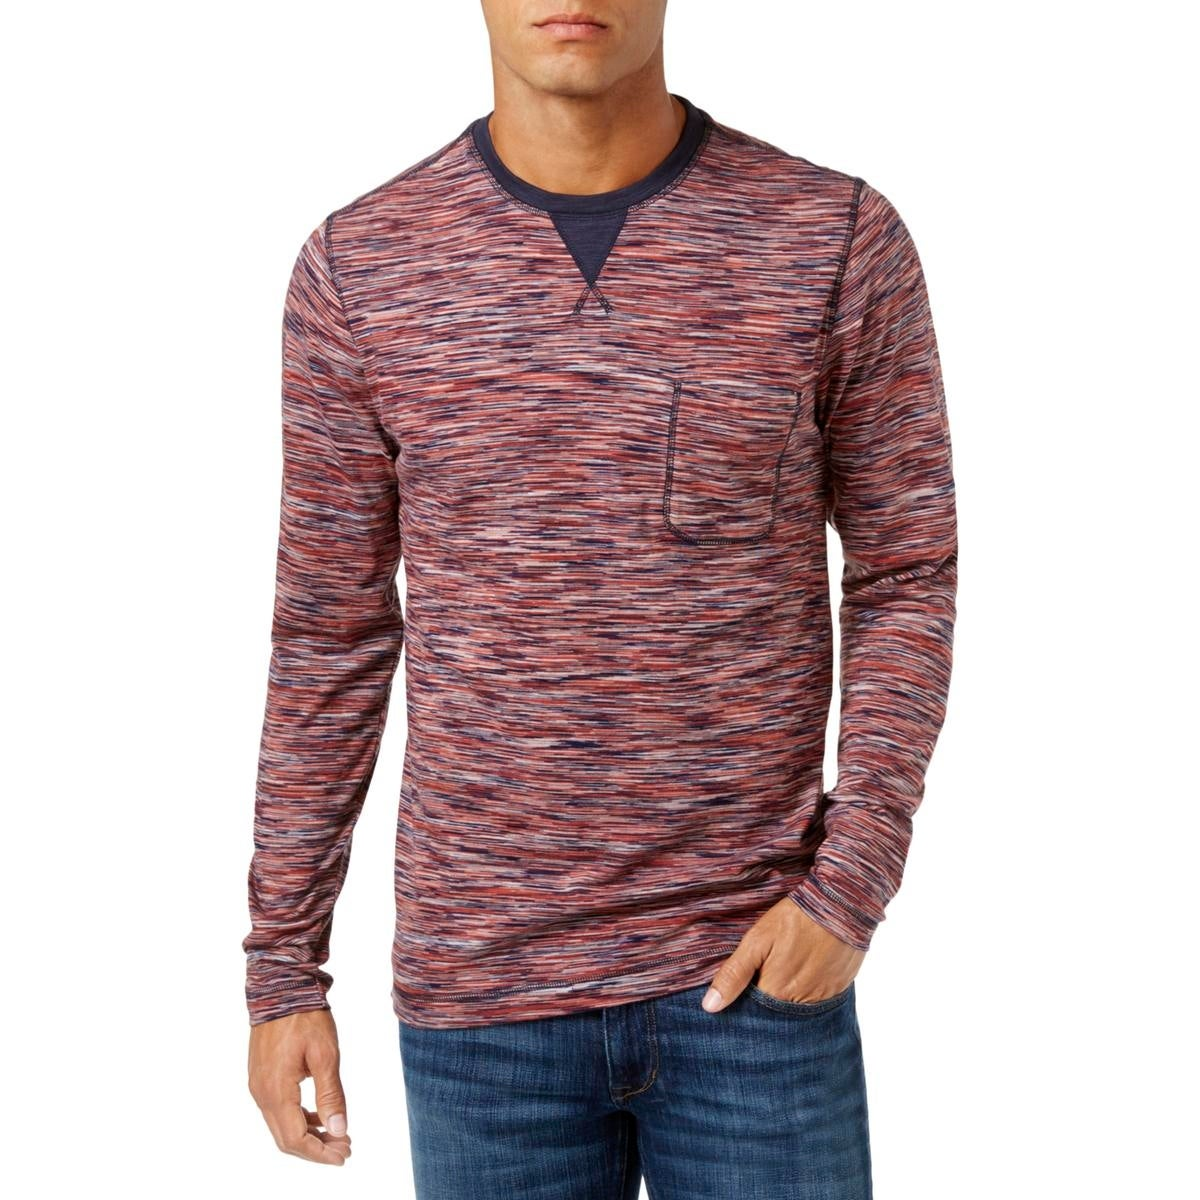 Weatherproof Mens Knit Space Dye Henley Shirt